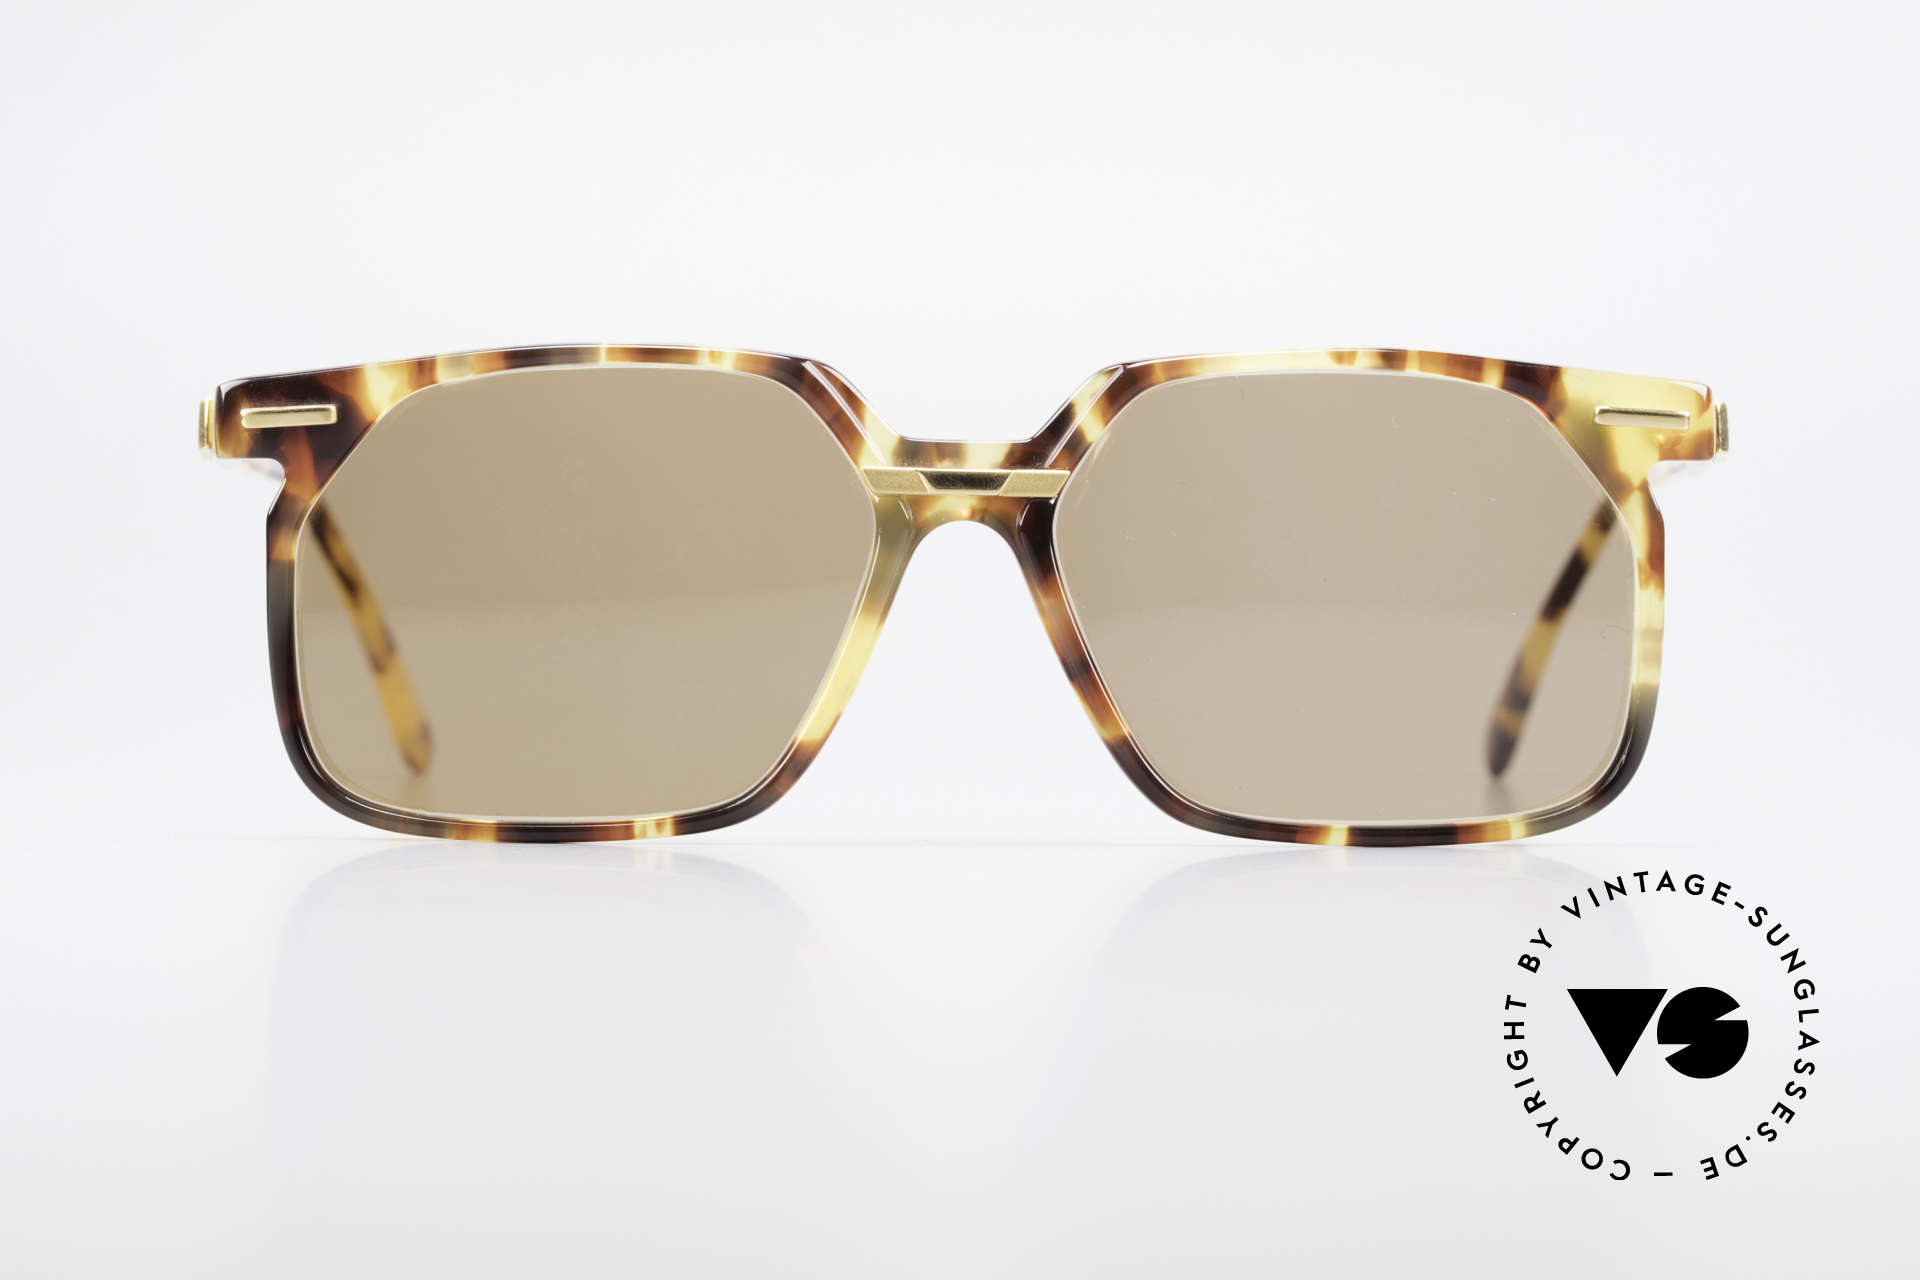 Cazal 646 Vintage Cazal No Retro Cazal, complex pattern in the semi-ransparent acetate, Made for Men